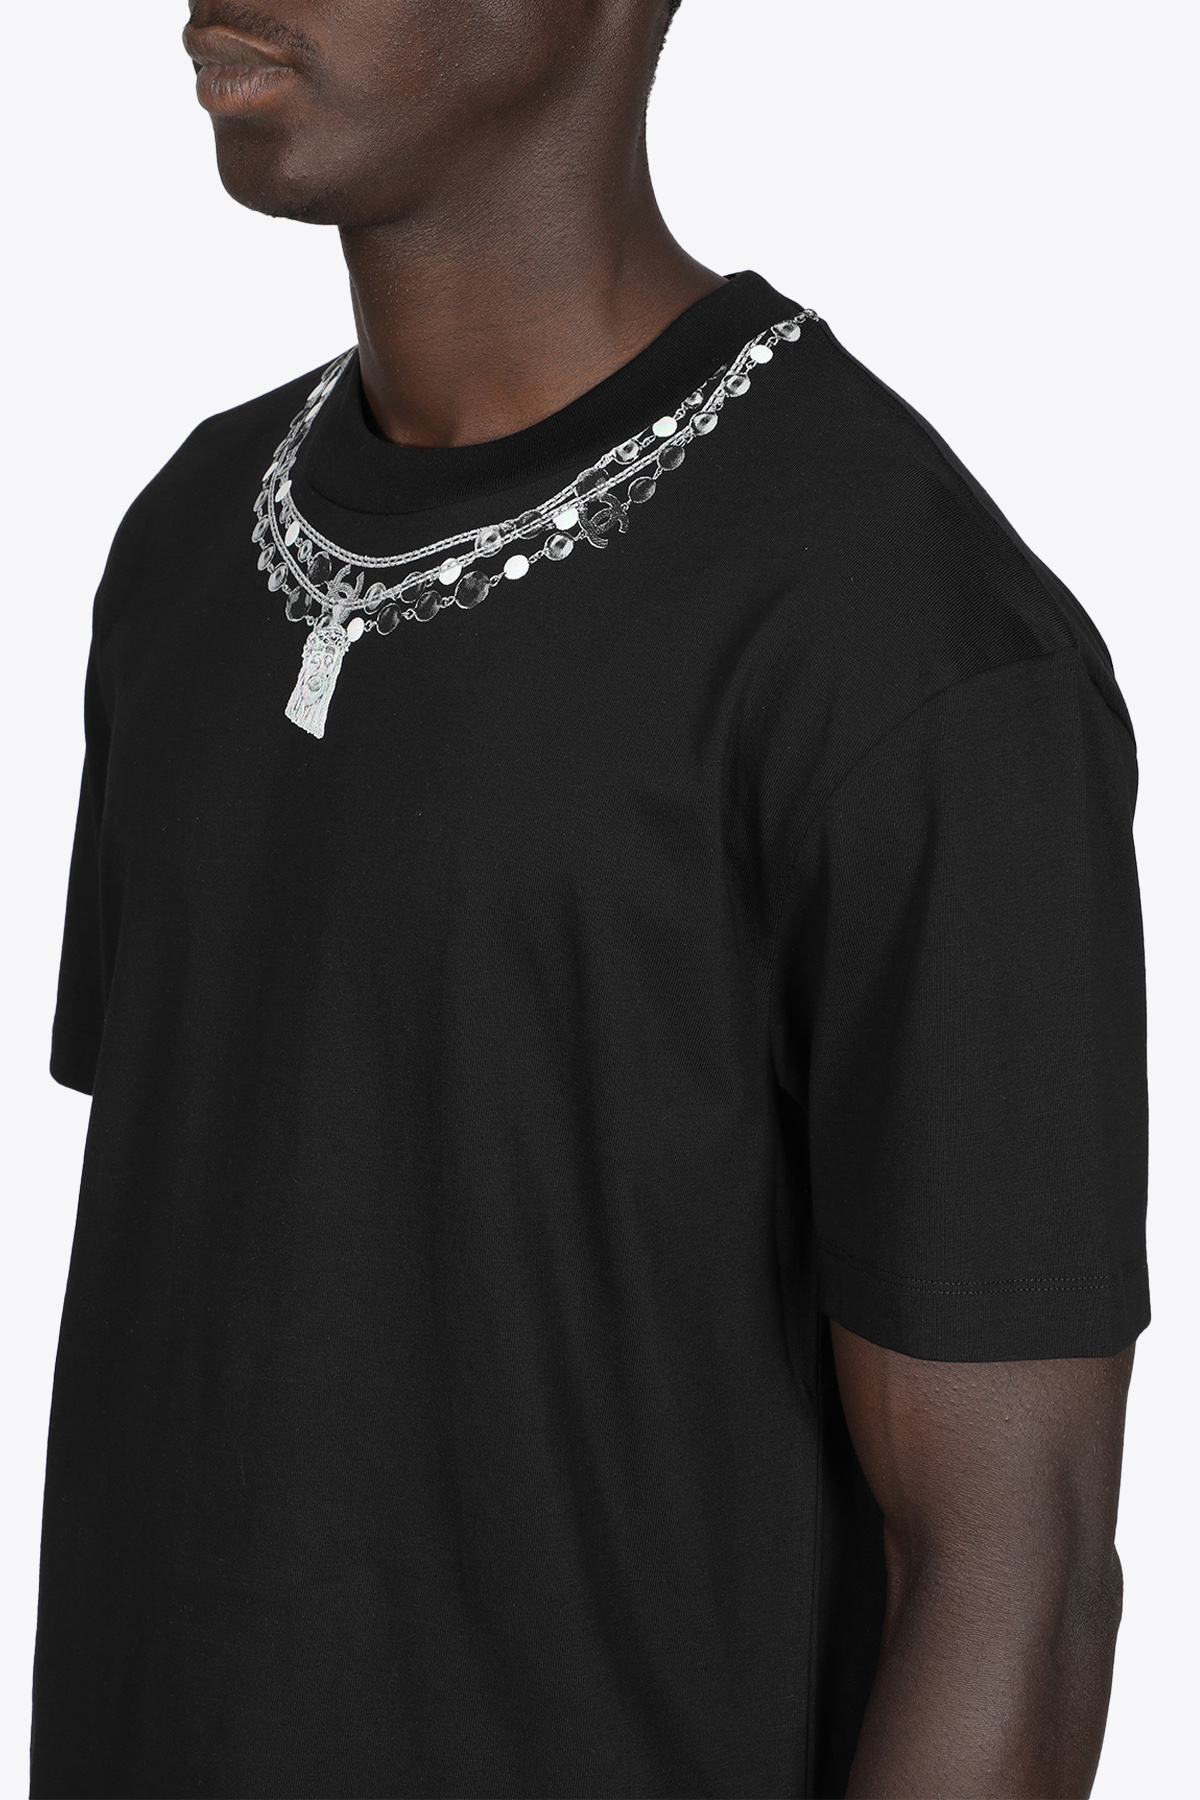 T-SHIRT NERA IN COTONE CON STAMPA COLLANA IH NOM UH NIT | 8 | NUW21231 T-SHIRT NECKLACES PRINTED009